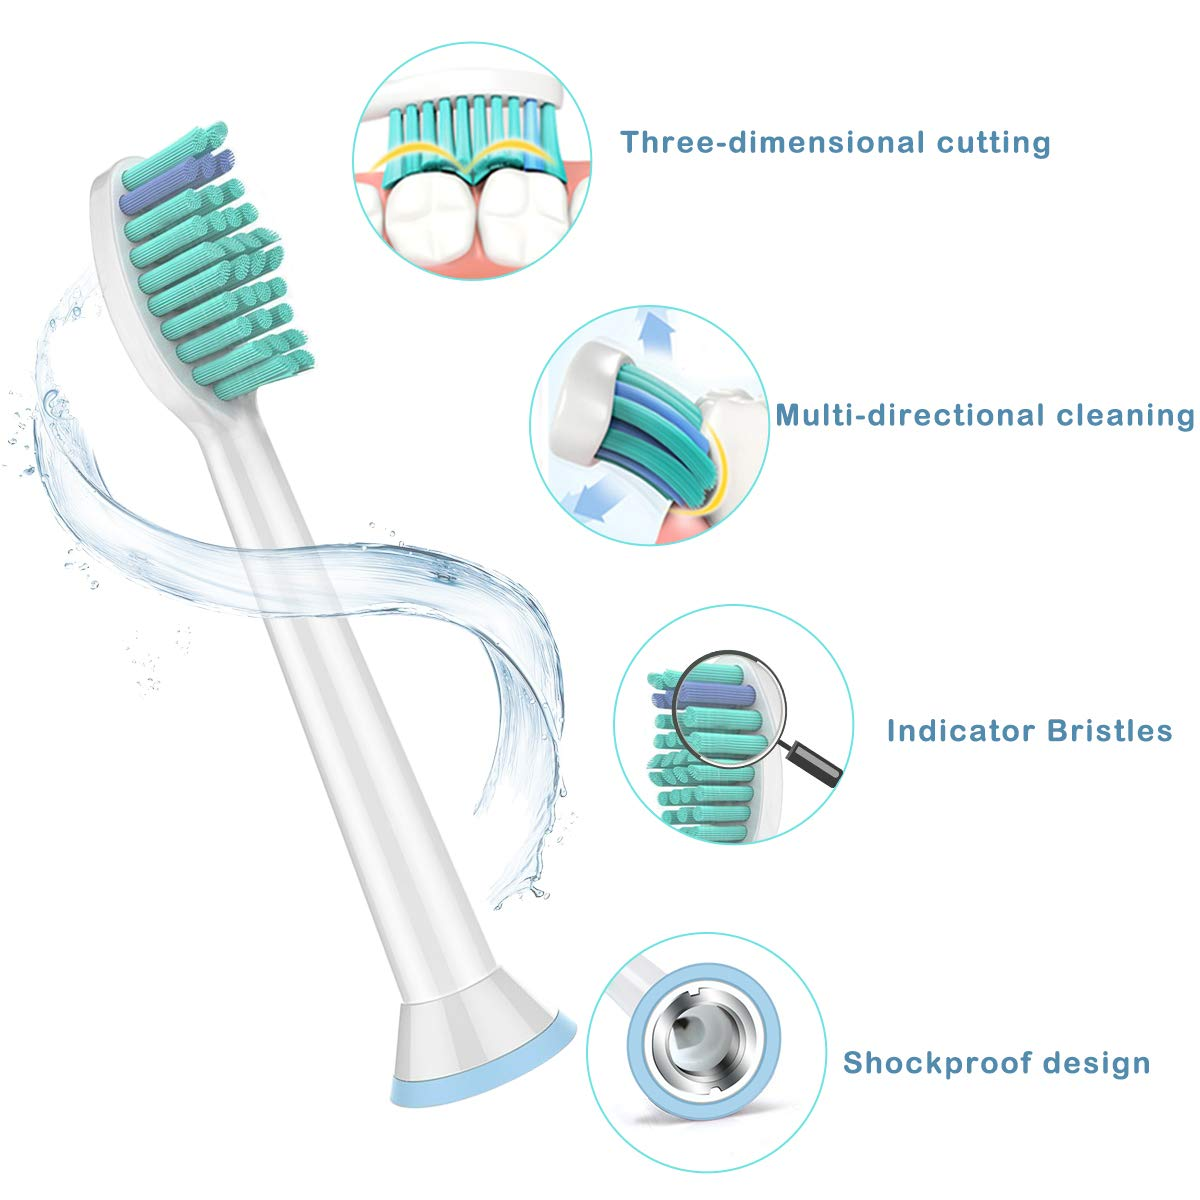 OTISA-Replacement Toothbrush Heads,10 Packs Toothbrush Head Compatible with Philips Sonicare DiamondClean,FlexCare,HealthyWhite,EasyClean,Essence+(Plus),More Toothbrush Heads for Brush Handles